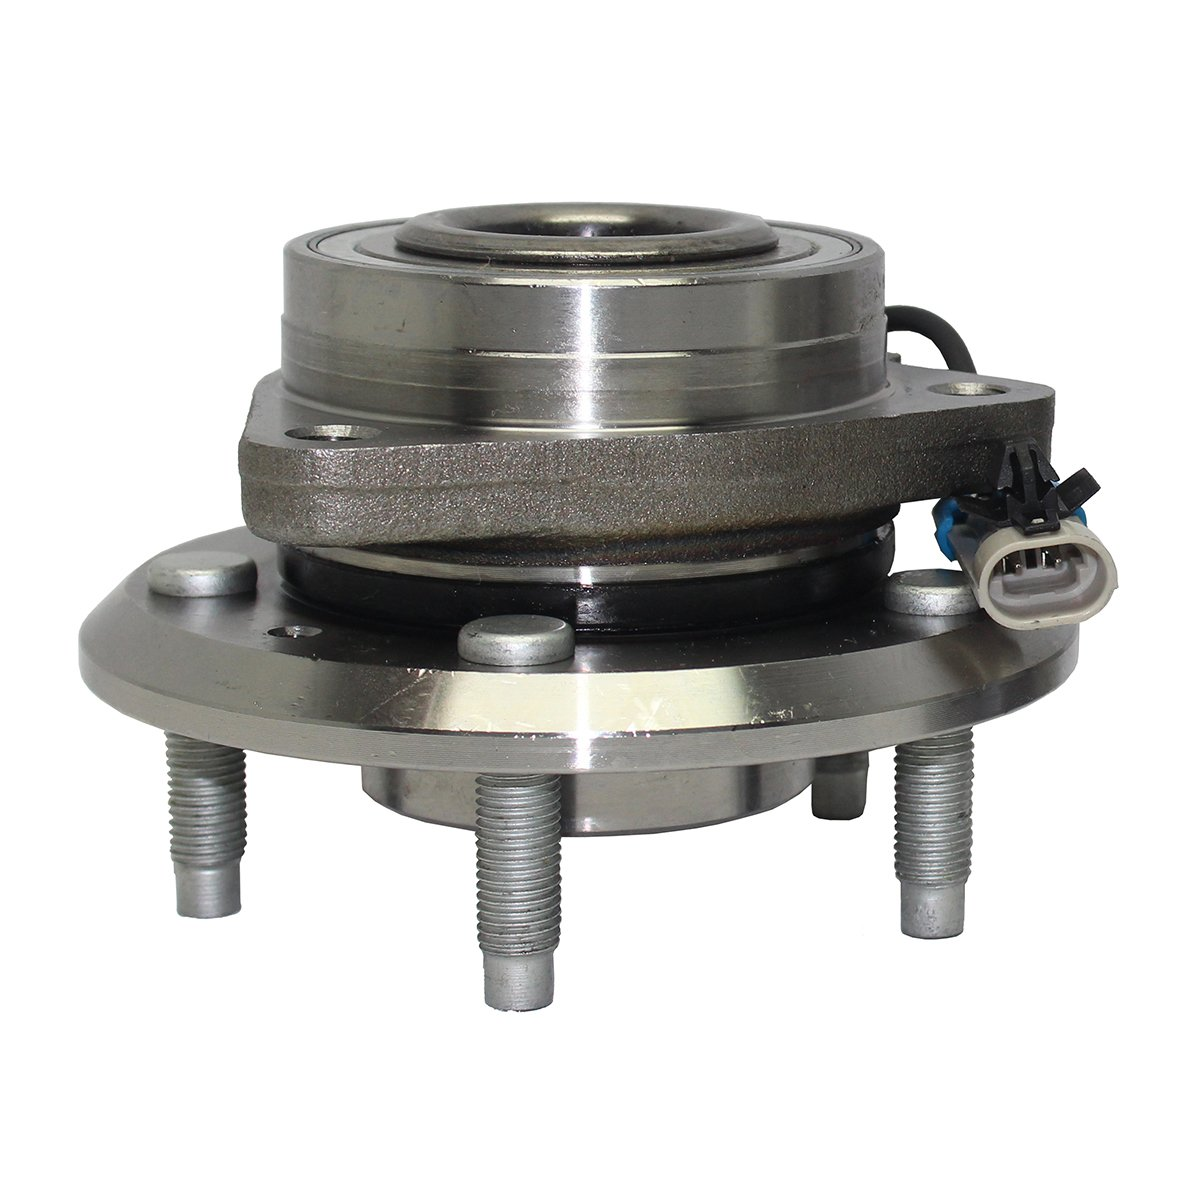 Brand New Front Wheel Hub and Bearing Assembly for Equinox, Torrent, Vue, XL-7 5 Bolt W/ABS 513276 Detroit Axle